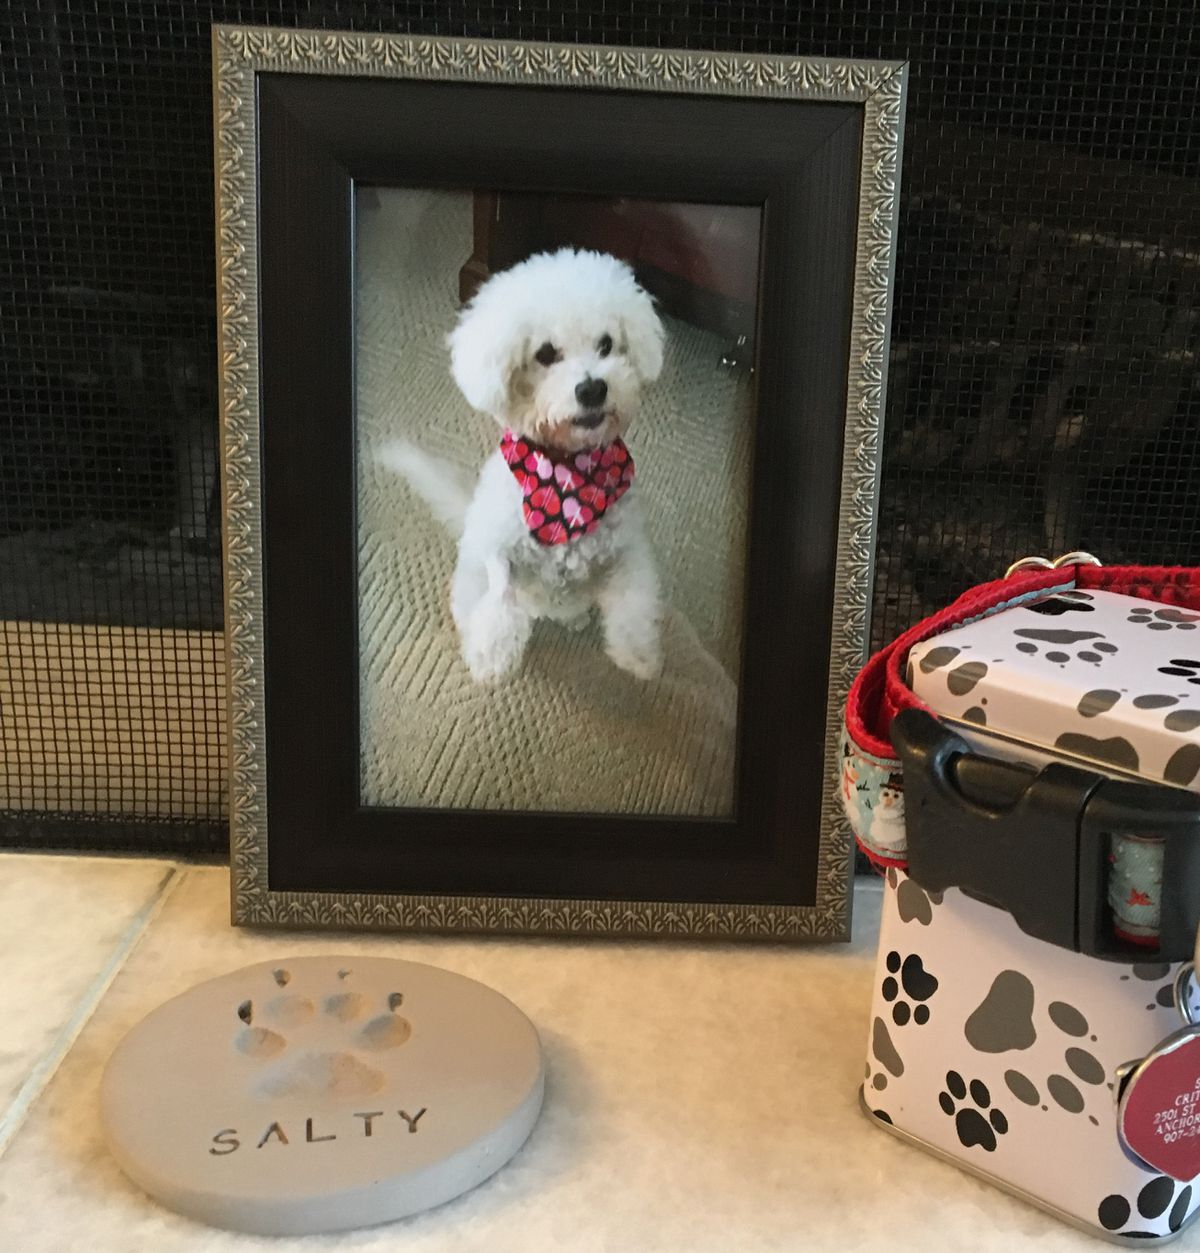 The Crittendens erected a small memorial for their dog, Salty, in front of their fireplace after he was killed at an East Anchorage boarding kennel in December 2018. (Madeline McGee / ADN)